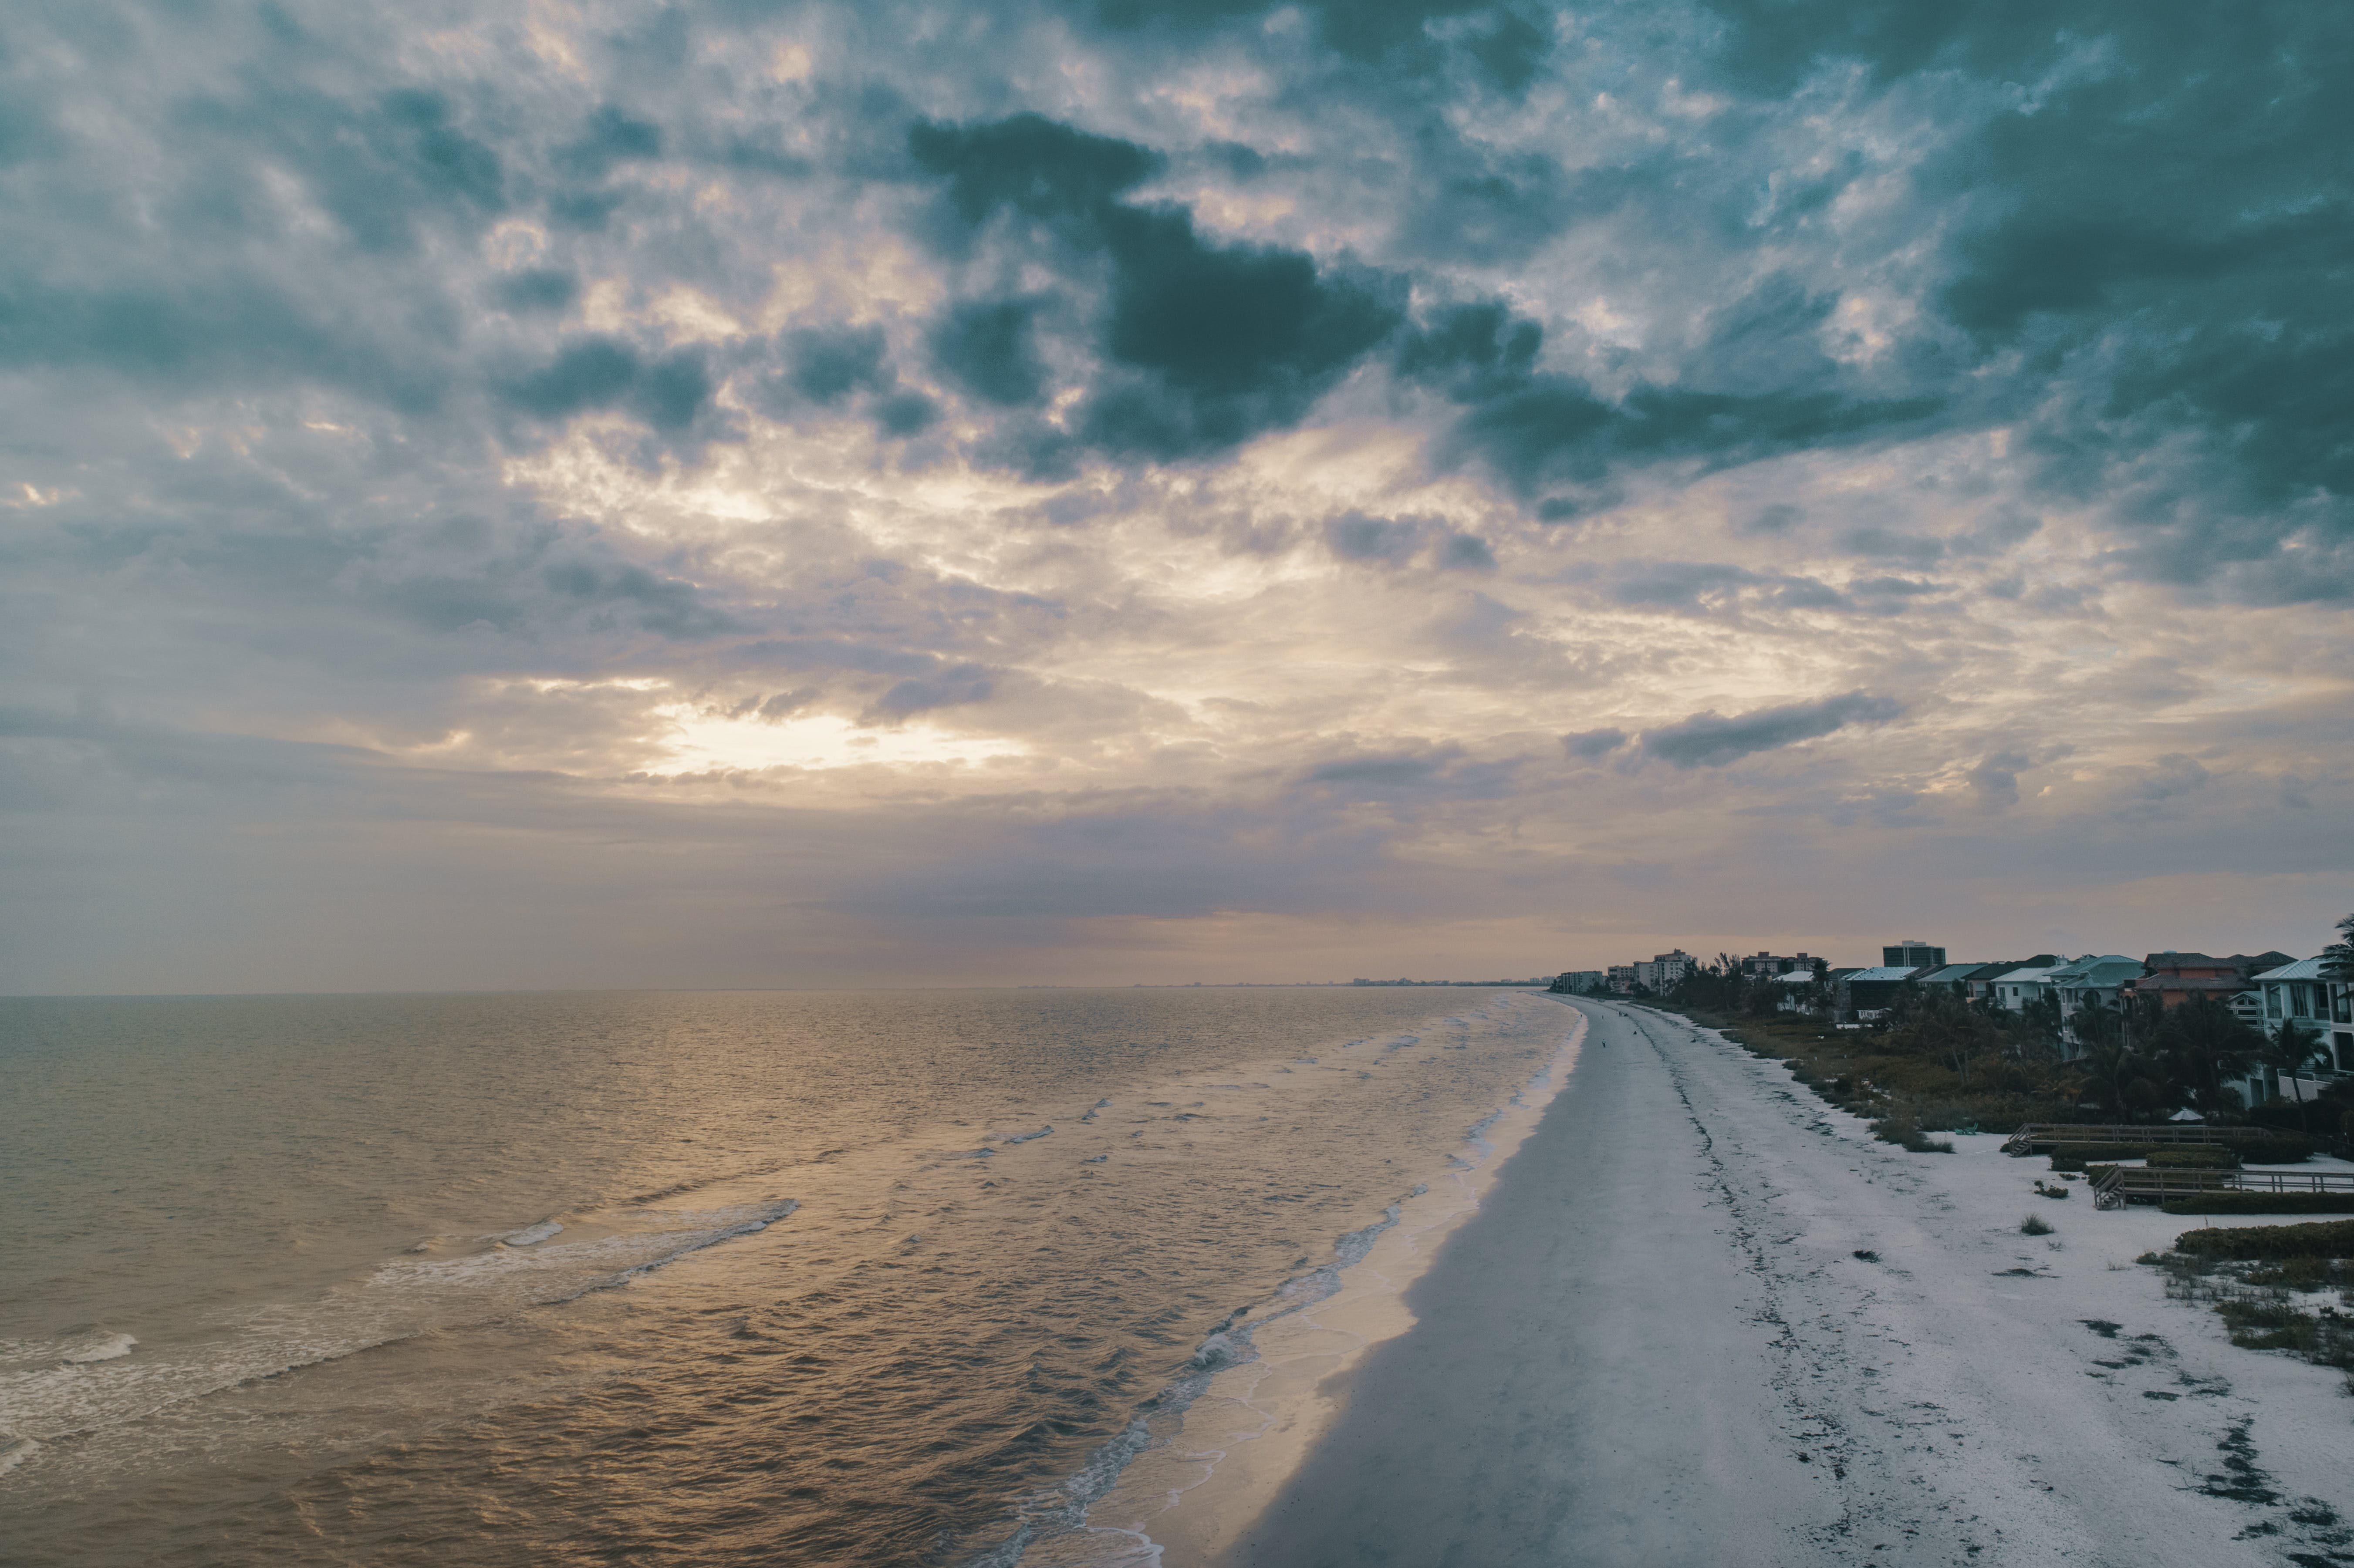 Wide Angle Photo of Shore Under Cloudy Sky